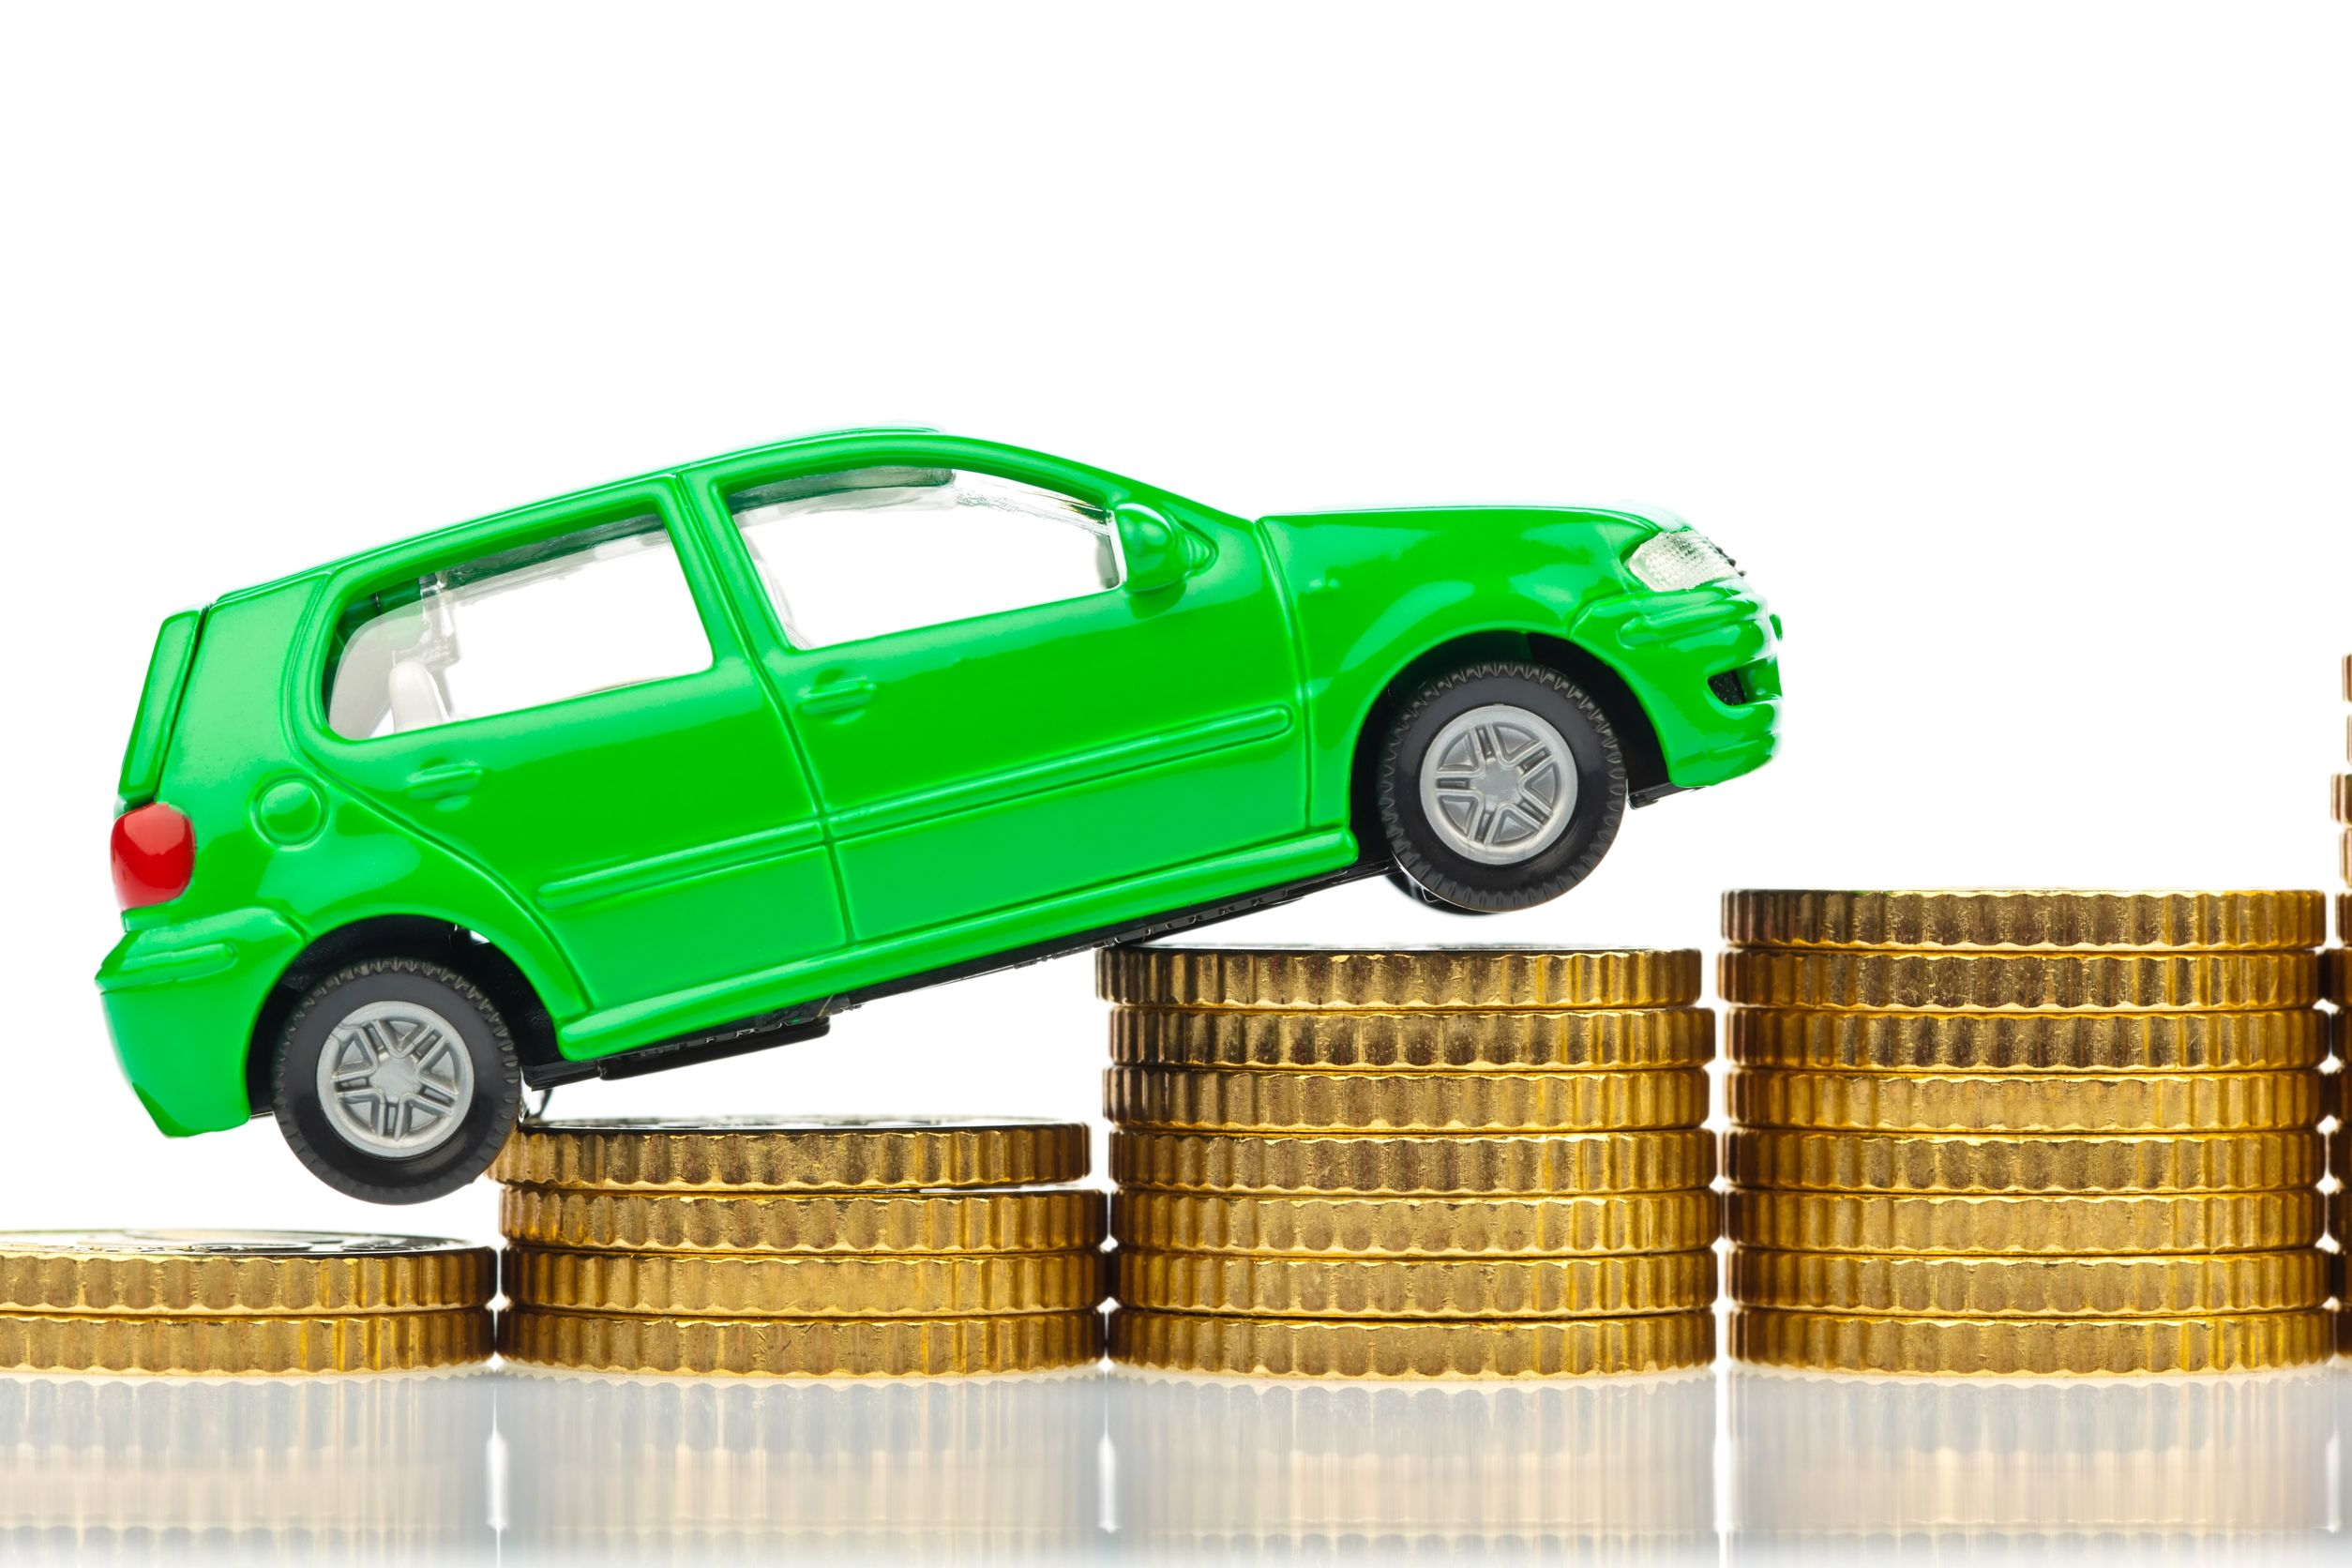 Auto Insurance Online Quotes   Auto Insurance Online Quotes Help You Save Tons Of Money Auto Car